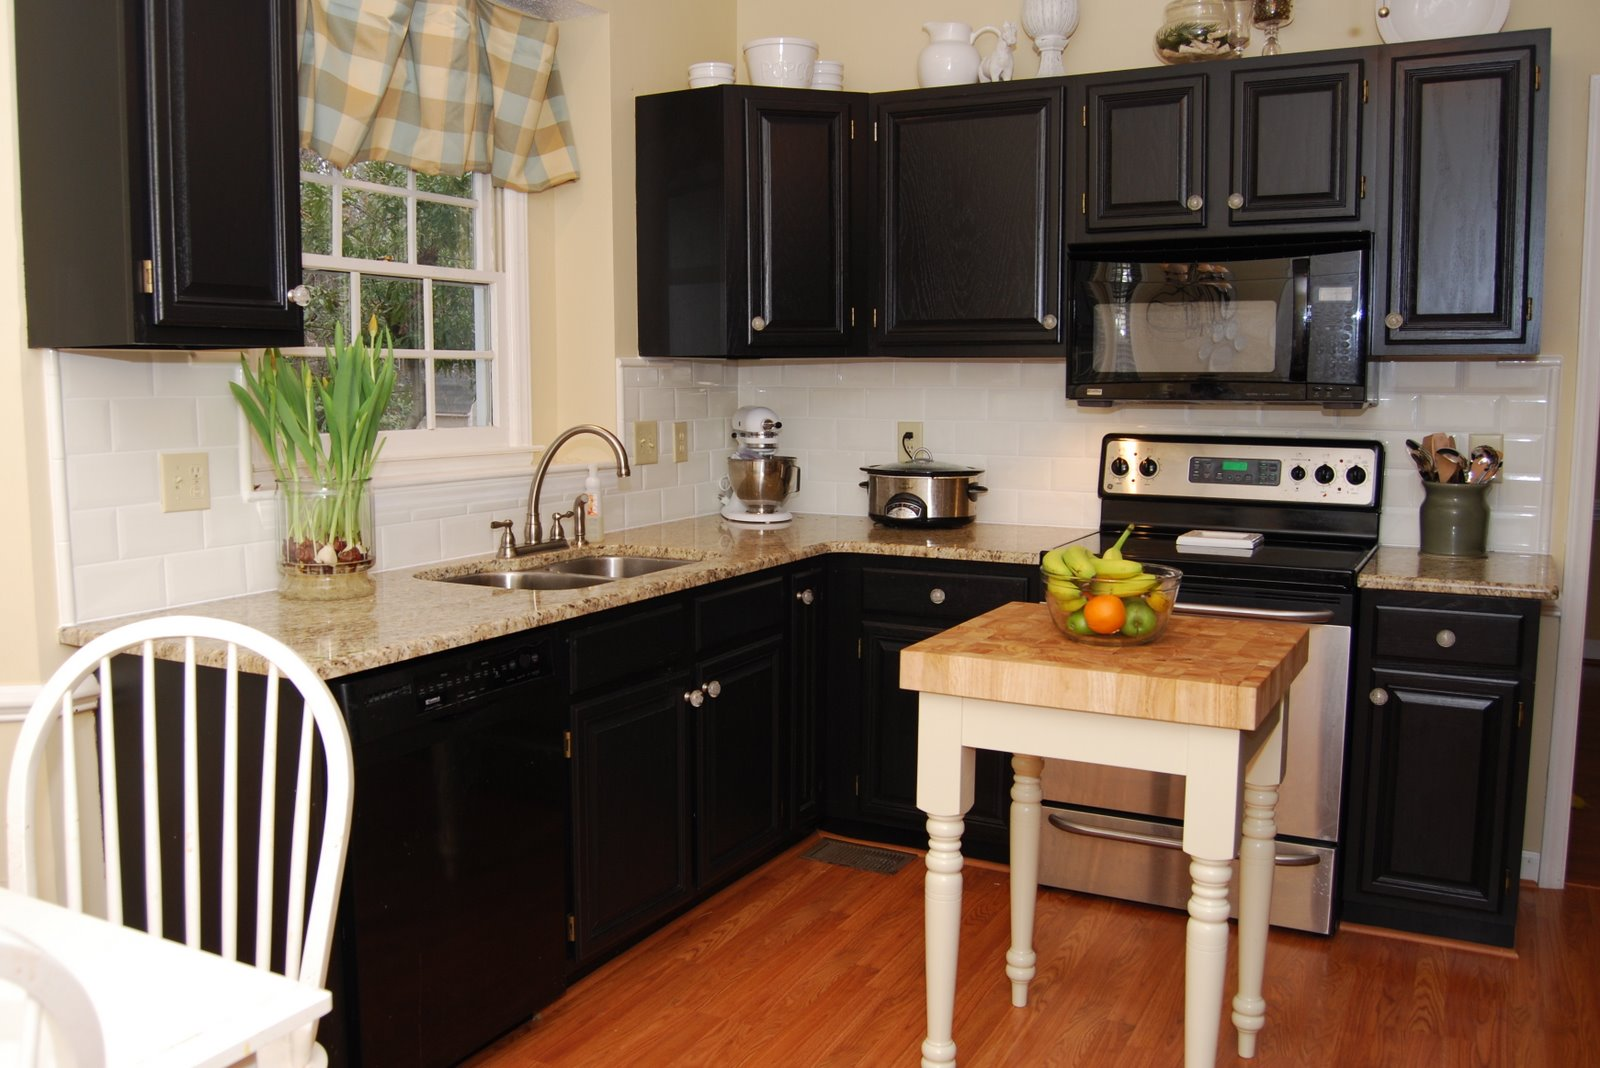 redecorating remodeling kitchen need help babycenter